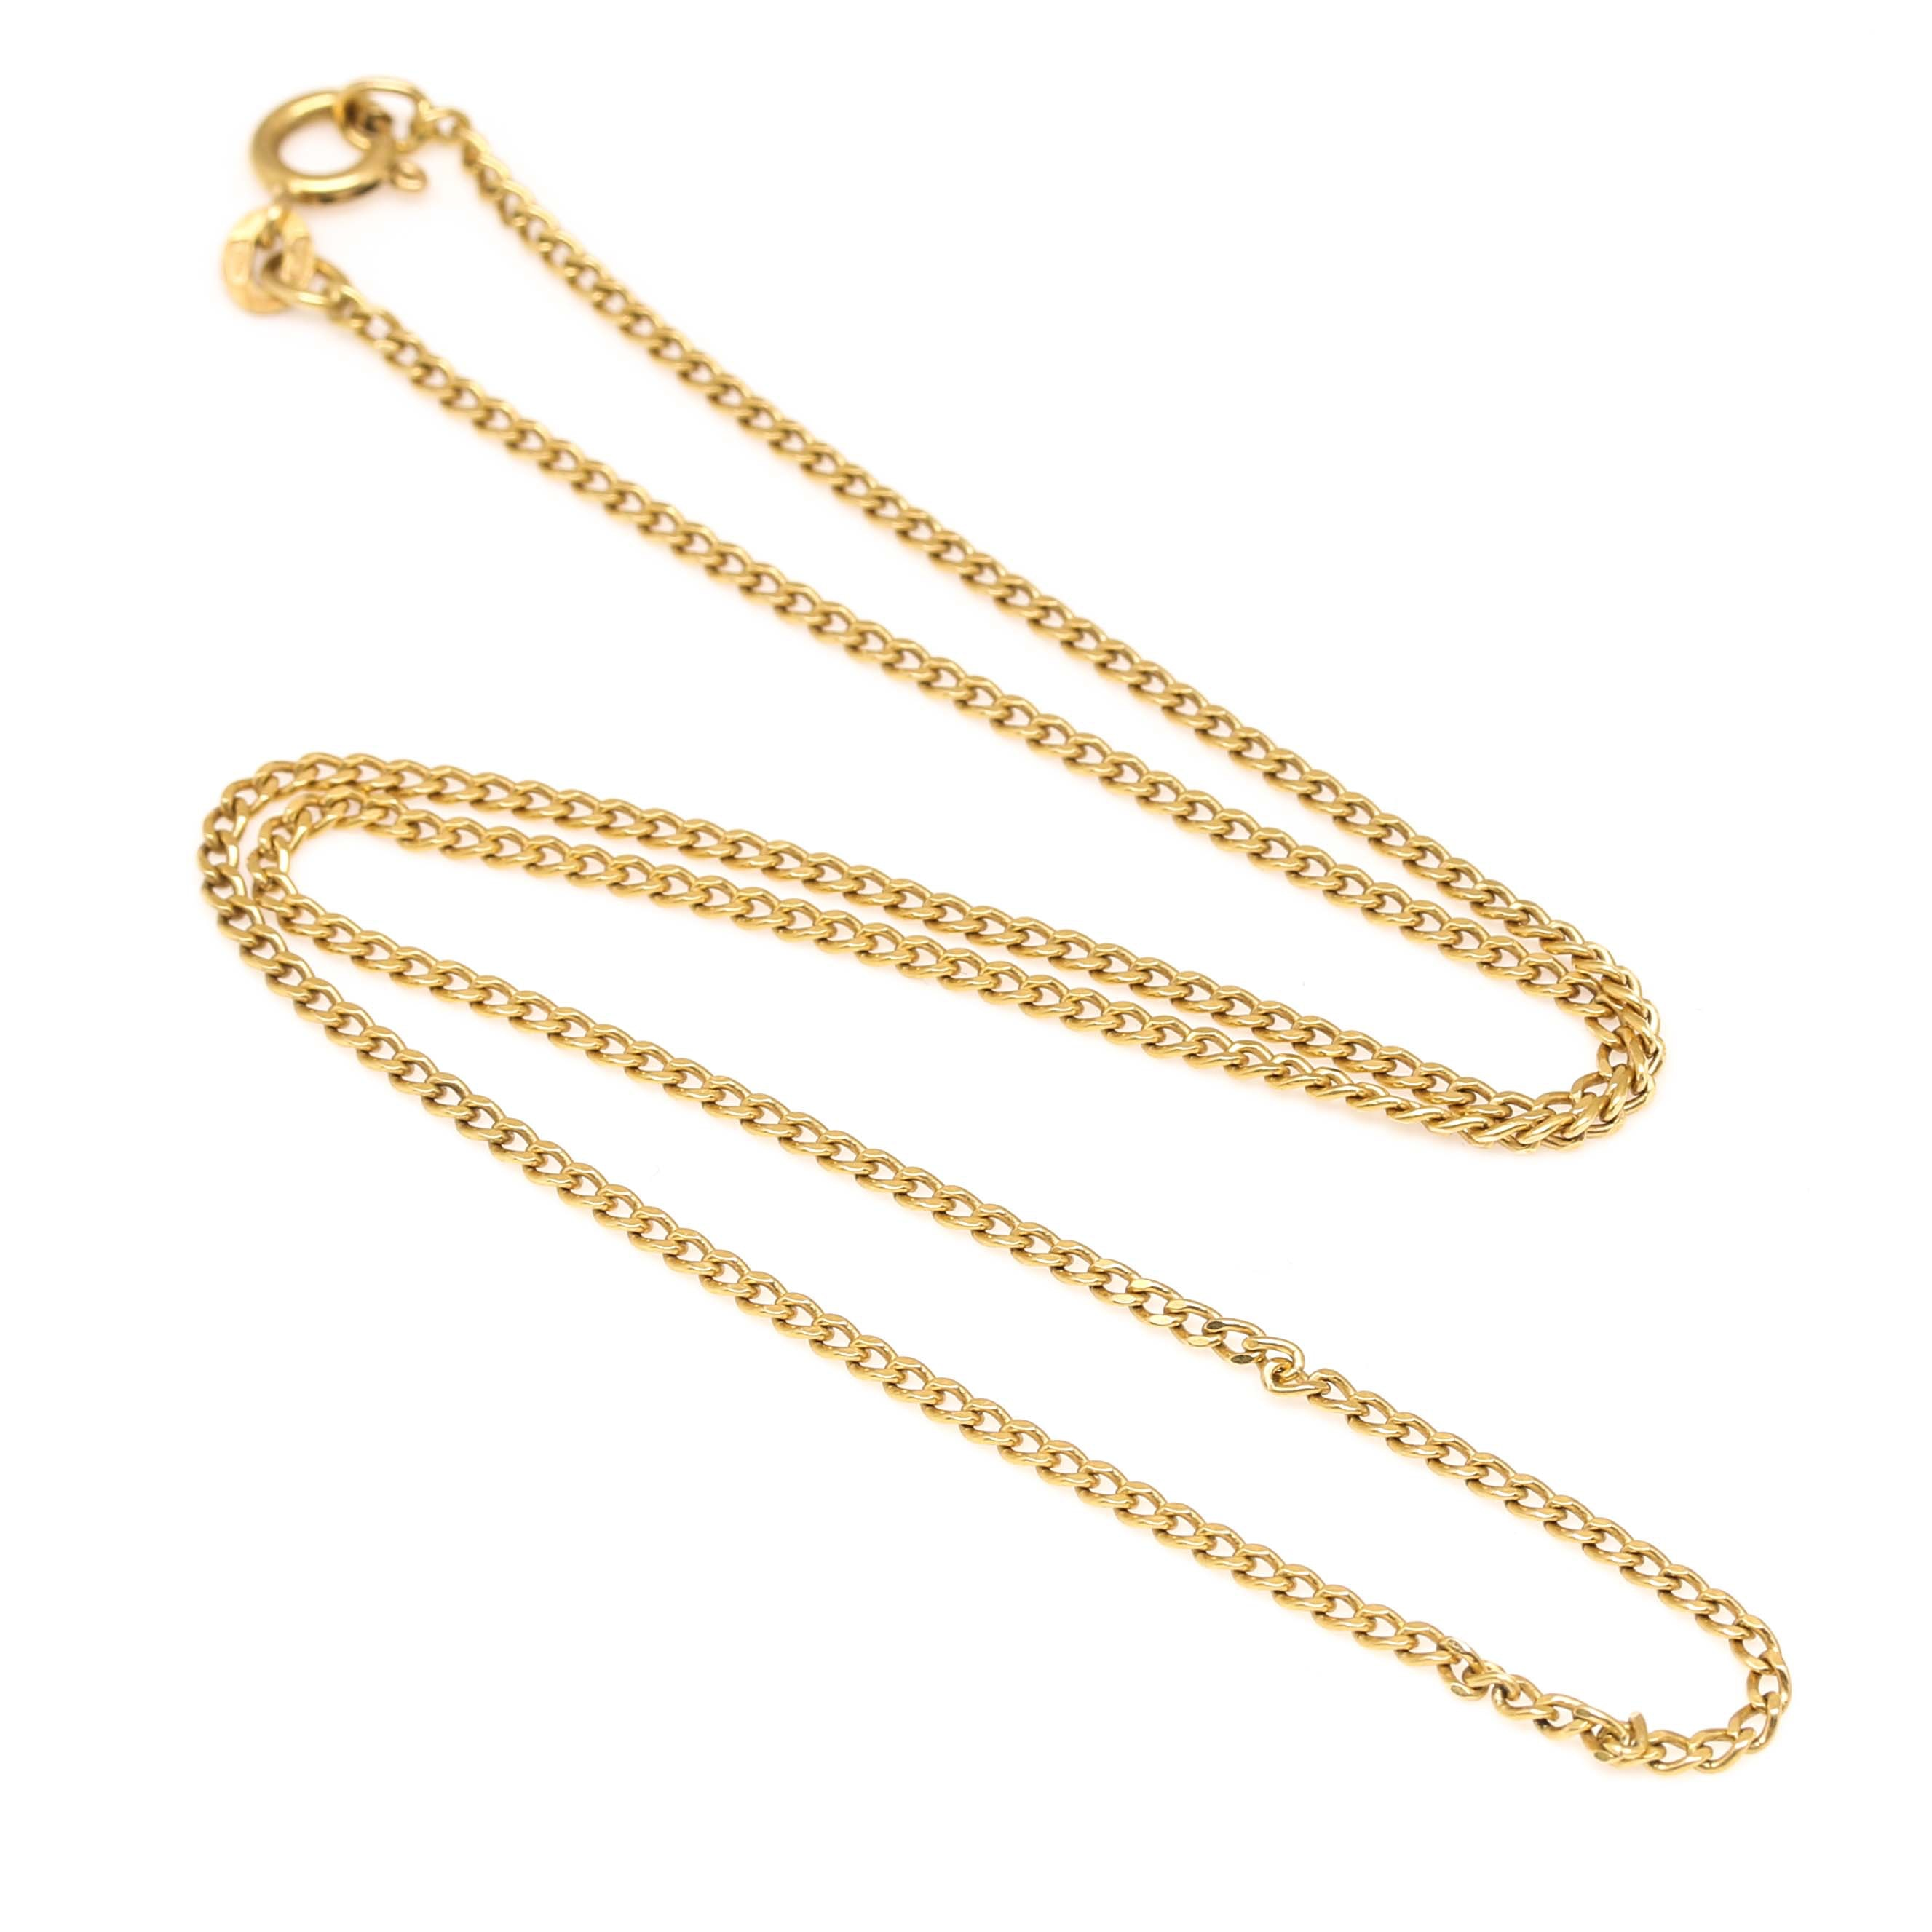 18K Yellow Gold Curb Chain Necklace